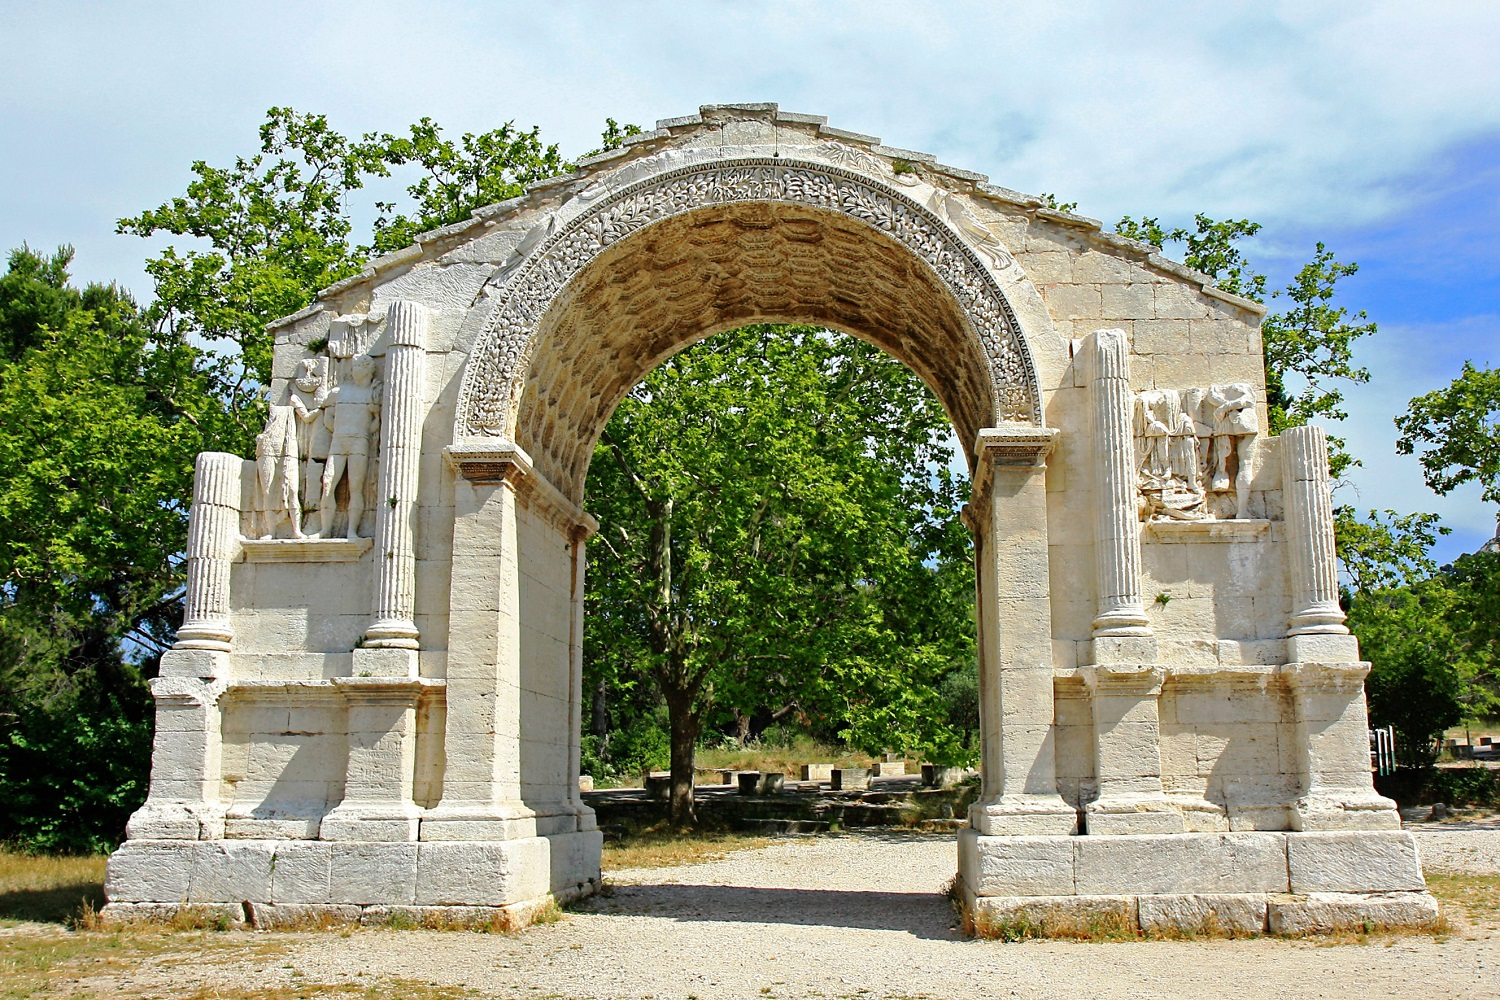 Image of the arch at Glanum in Saint-Rémy-de-Provence.